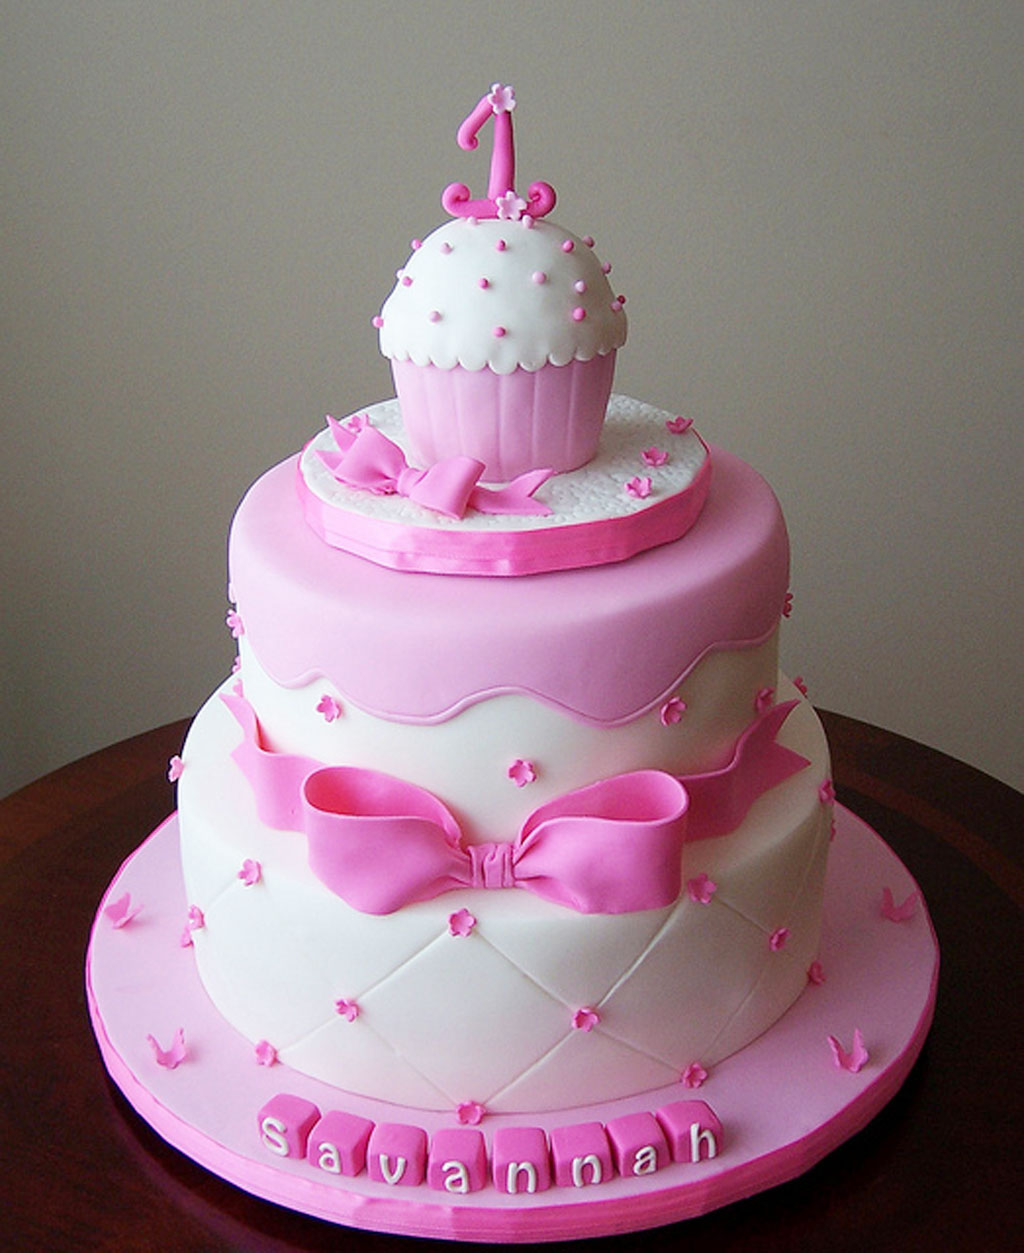 Birthday Cake Pics For Little Girl : Birthday cakes for girls images, pictures, wallpapers and ...